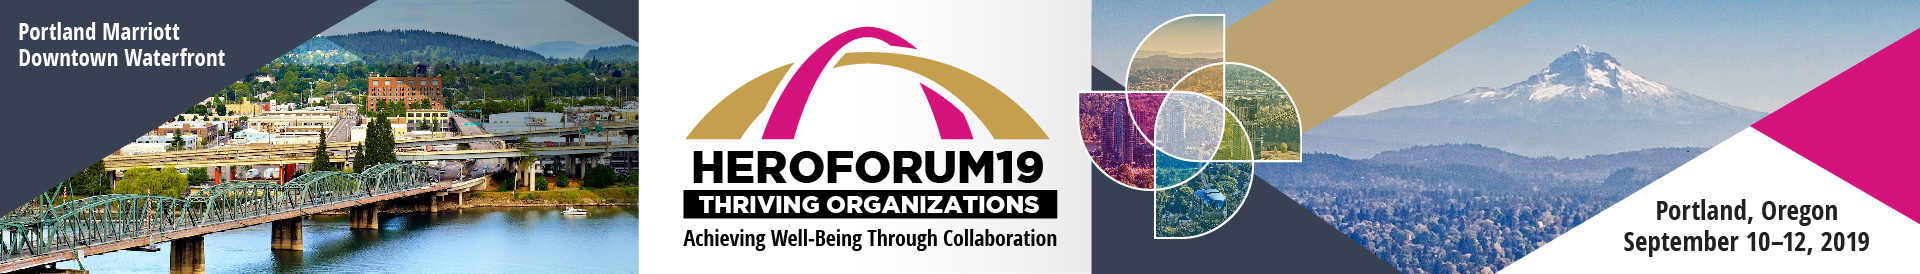 HERO Forum19 Thriving Organizations Sept 10-12 2019